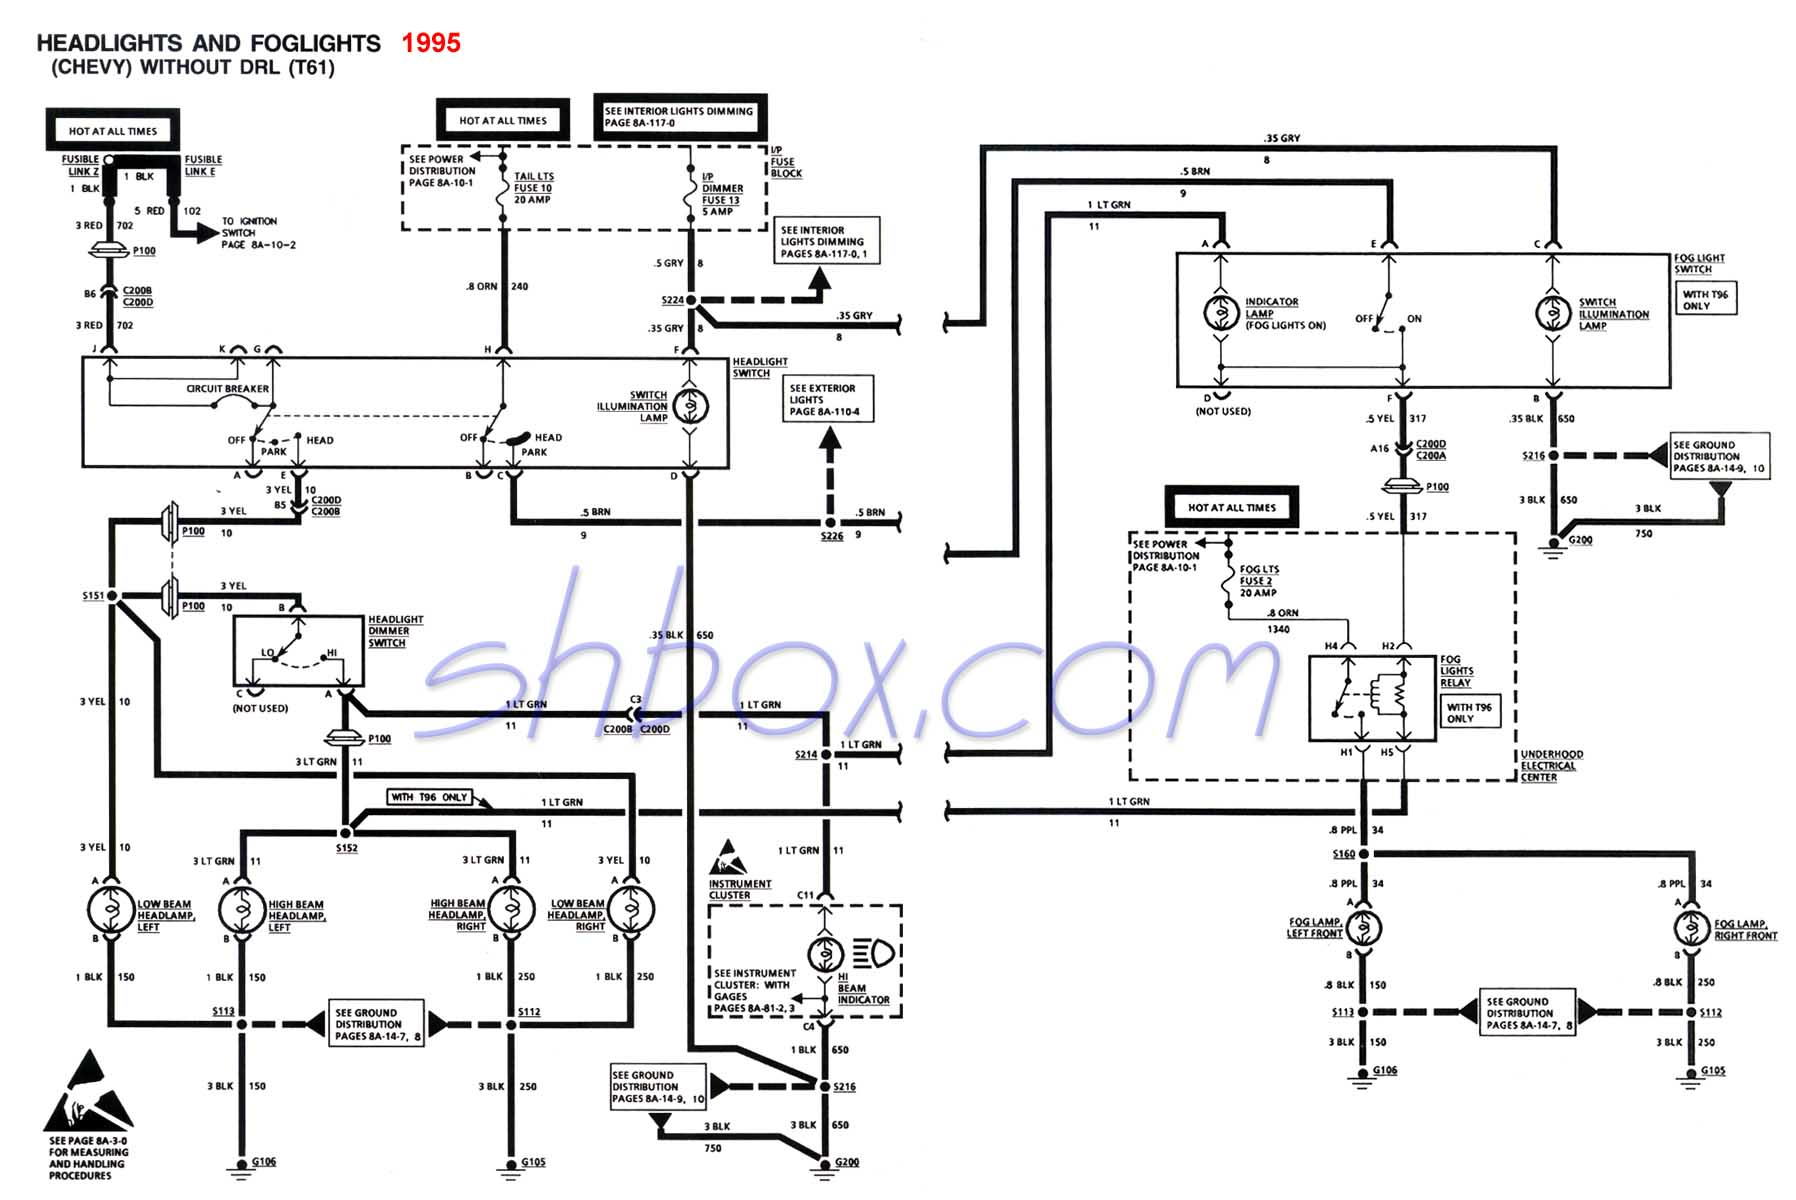 hight resolution of 1991 ford probe lx fuse box diagram online wiring diagram data1991 ford probe lx fuse box